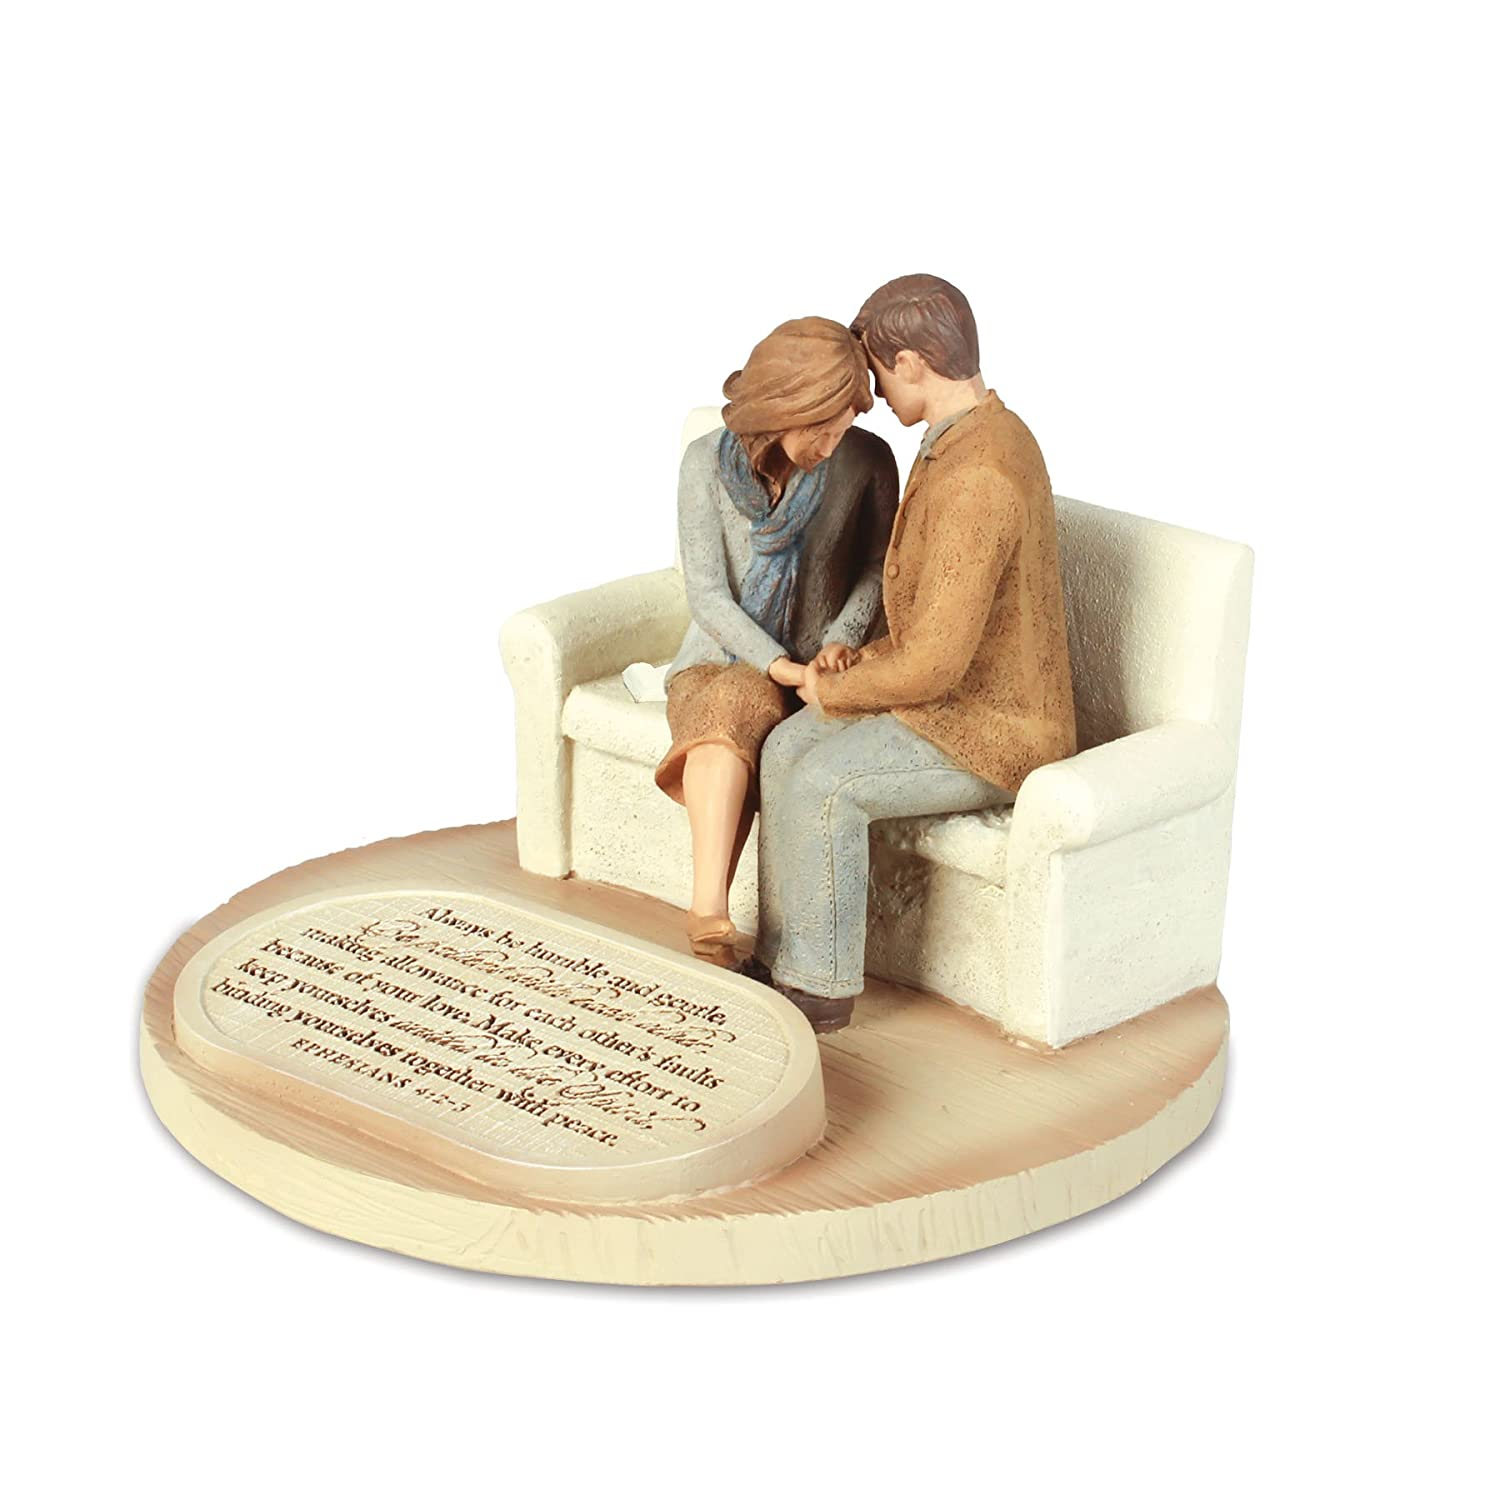 Lighthouse Christian Products Devoted Praying Boy Sculpture, 4 3/4 x 4 3/4 x 3 20183